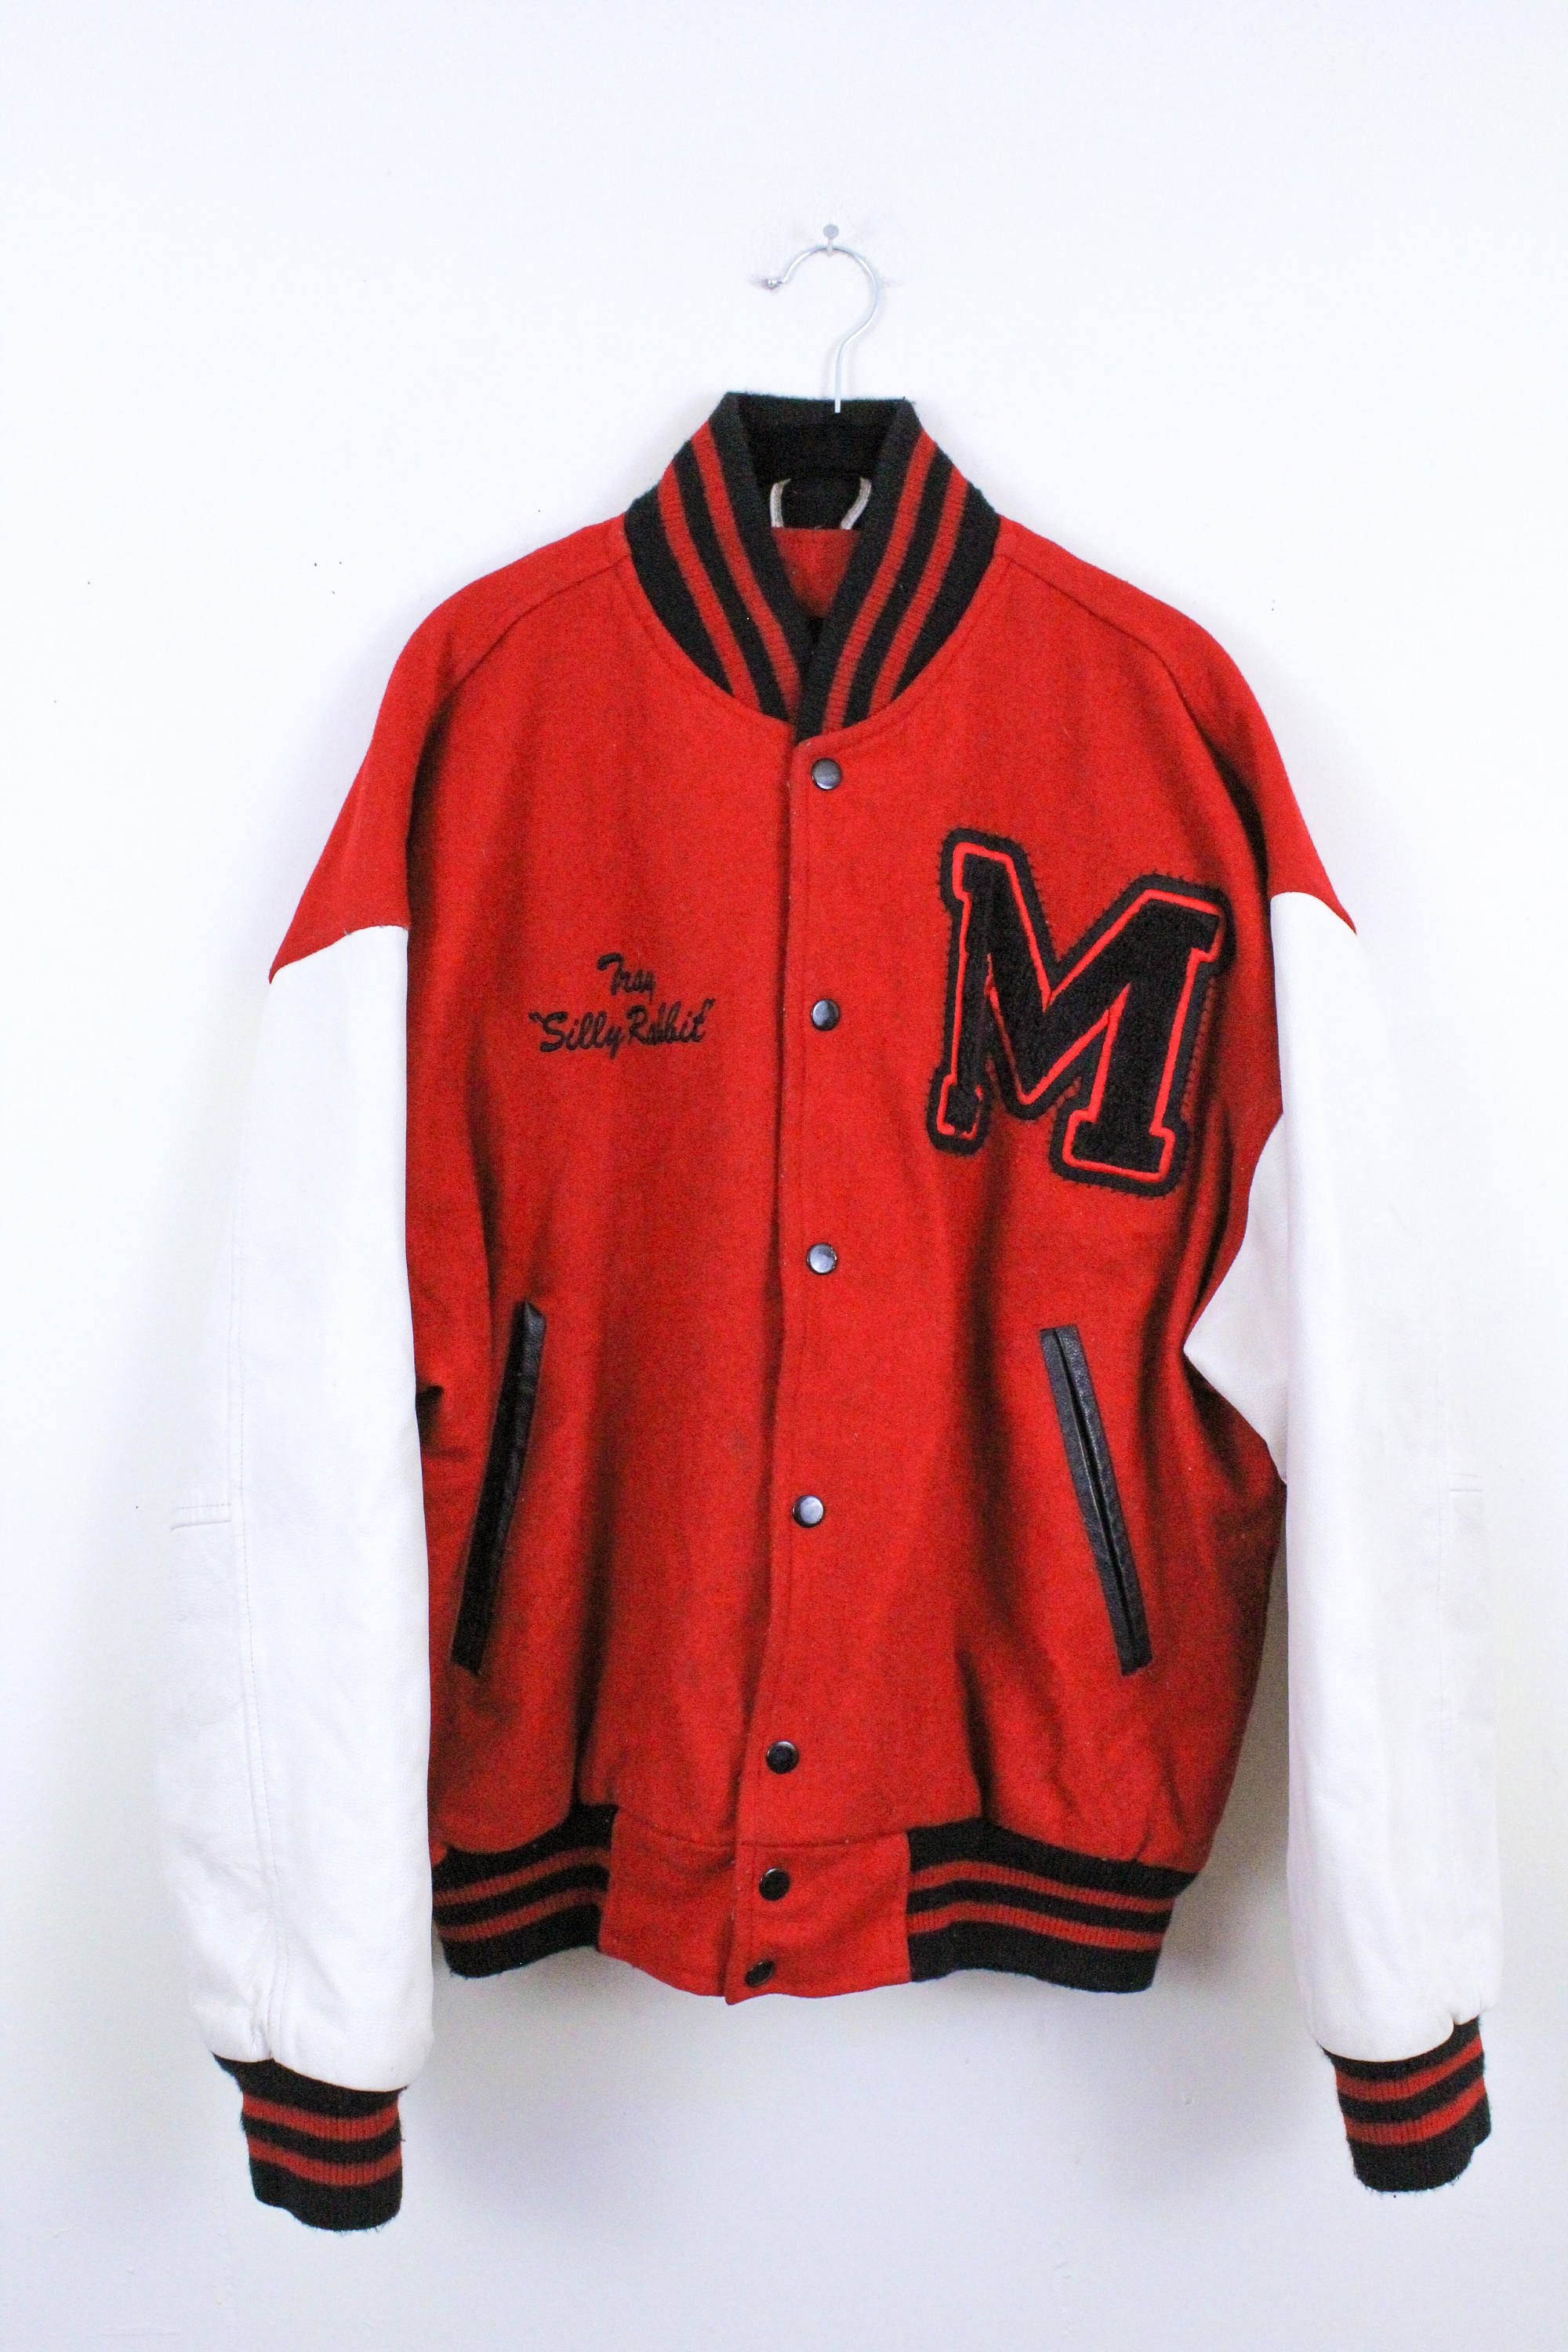 bb132565e 90s Red White and Black Letterman Jacket / Leather / Wool / Silly Rabbit /  Snap Front / Varsity / Medium / Mens / Vintage / M / Teen Wolf / by ...